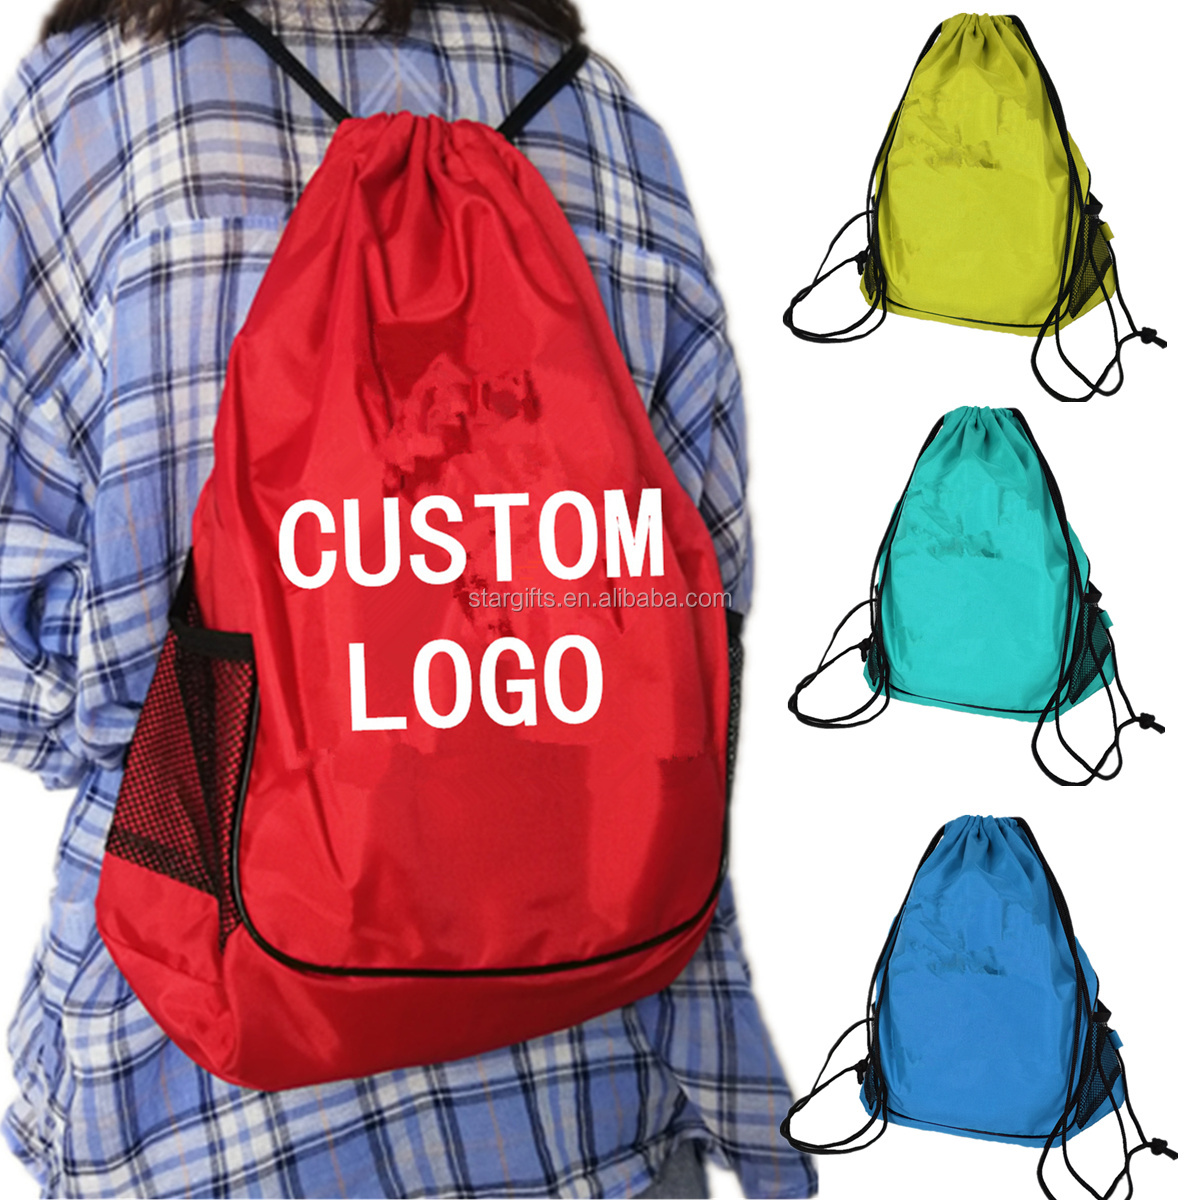 Extra Multicolour Well-priced Gym Travel Shopping Lightweight Backpack Drawstring Bag For Adults Children